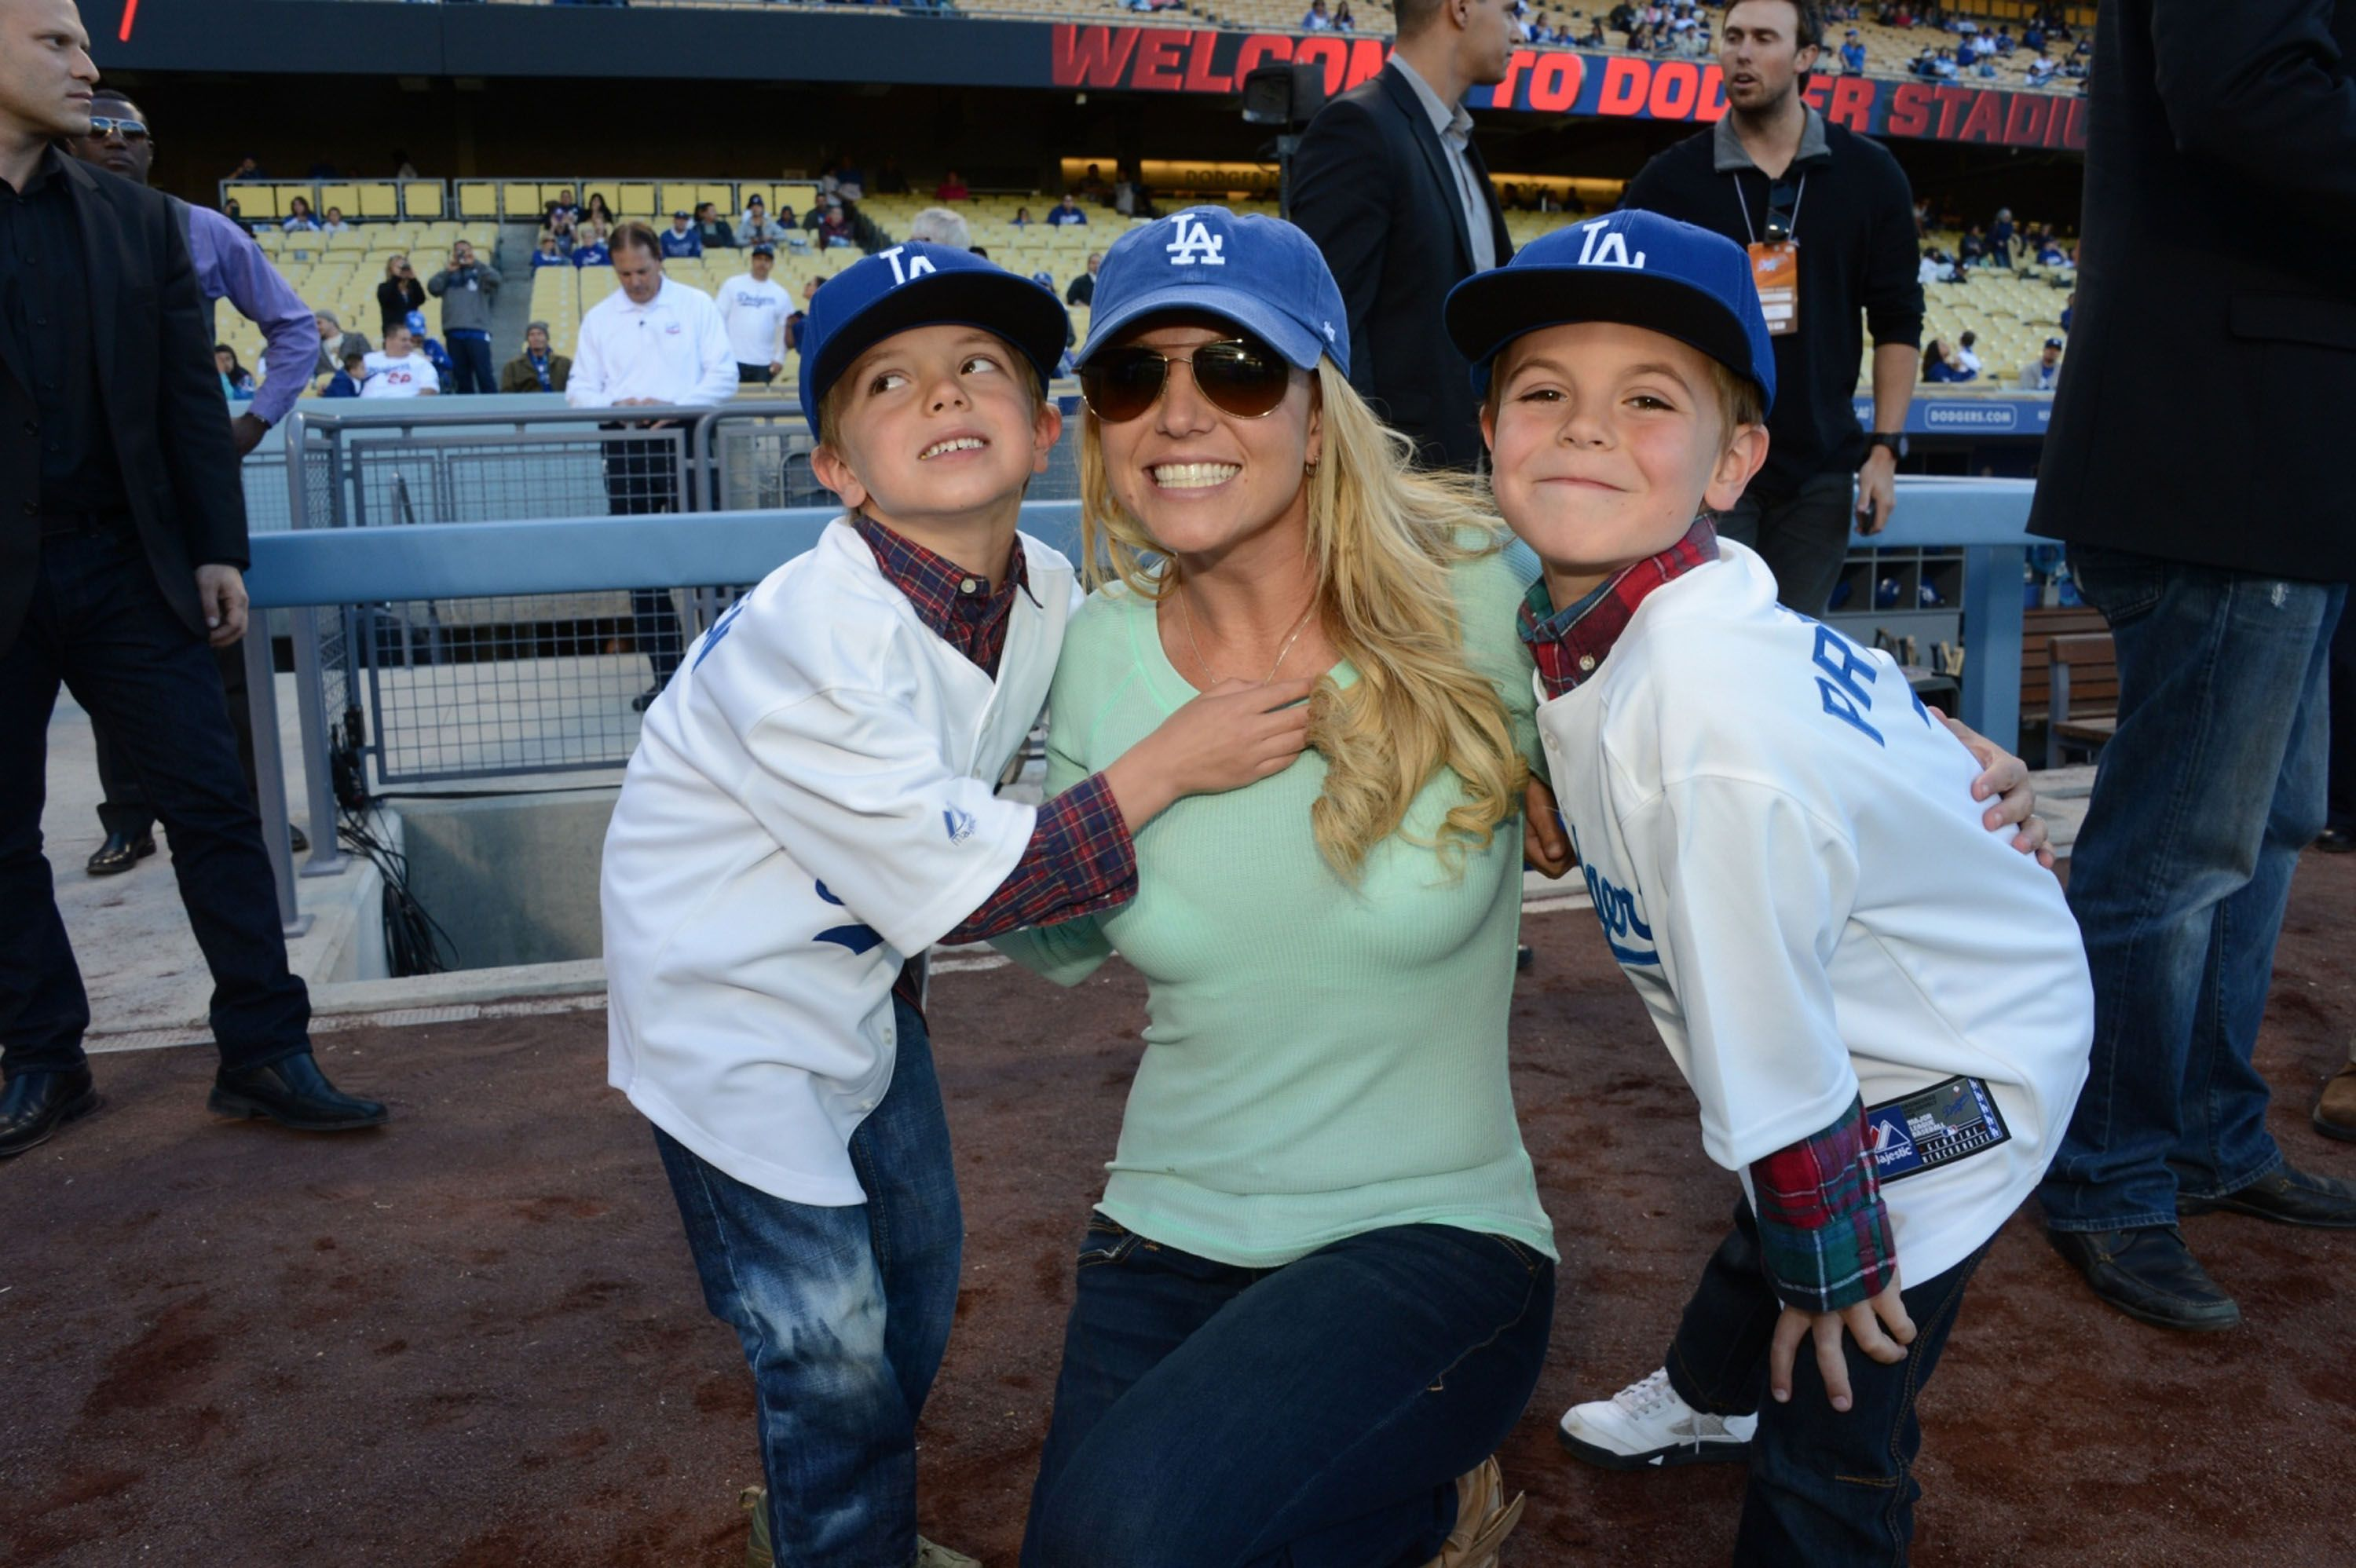 Britney Spearswith sons Jayden and Sean Federline at the Dodger Stadium in 2013 in Los Angeles | Souce: Getty Images